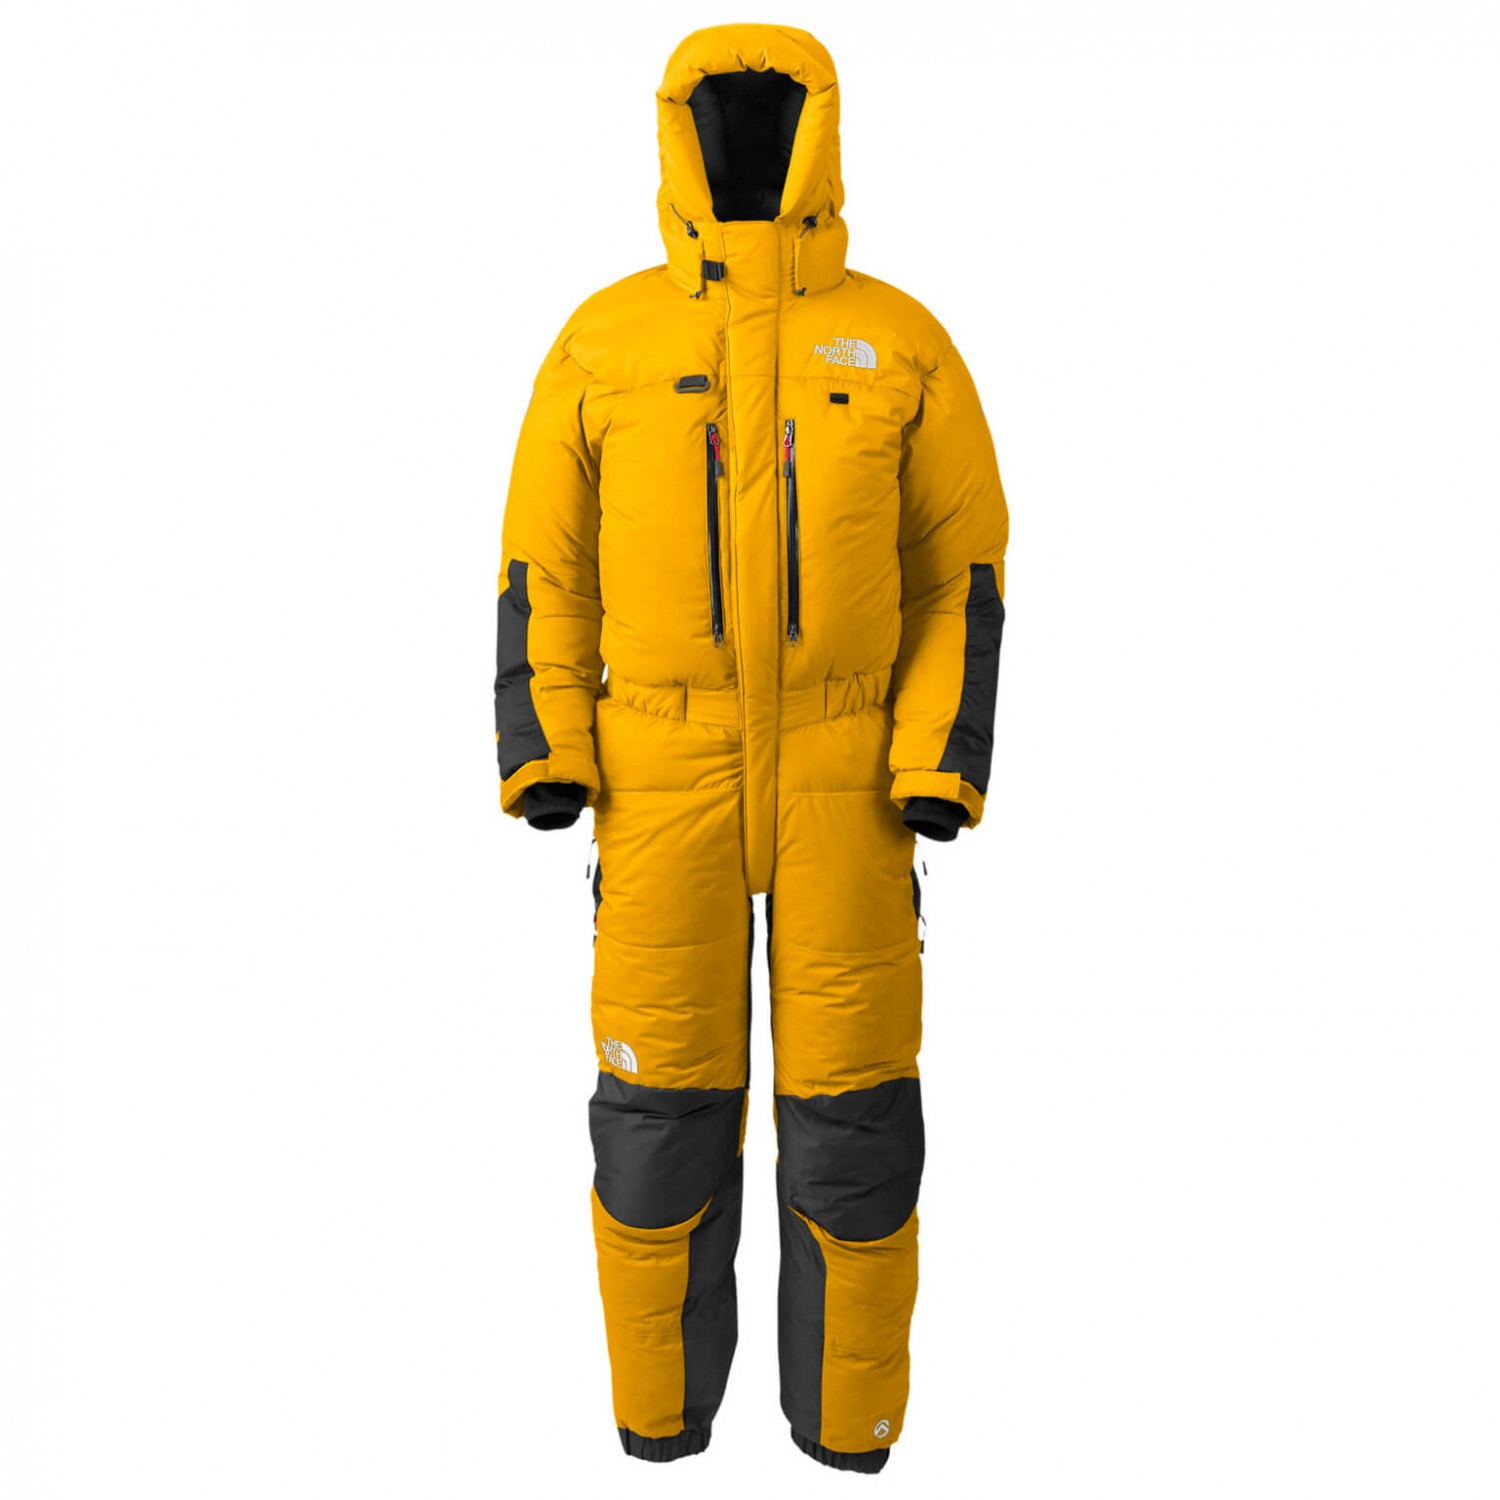 The North Face Himalayan Suit Expedition Suit Buy